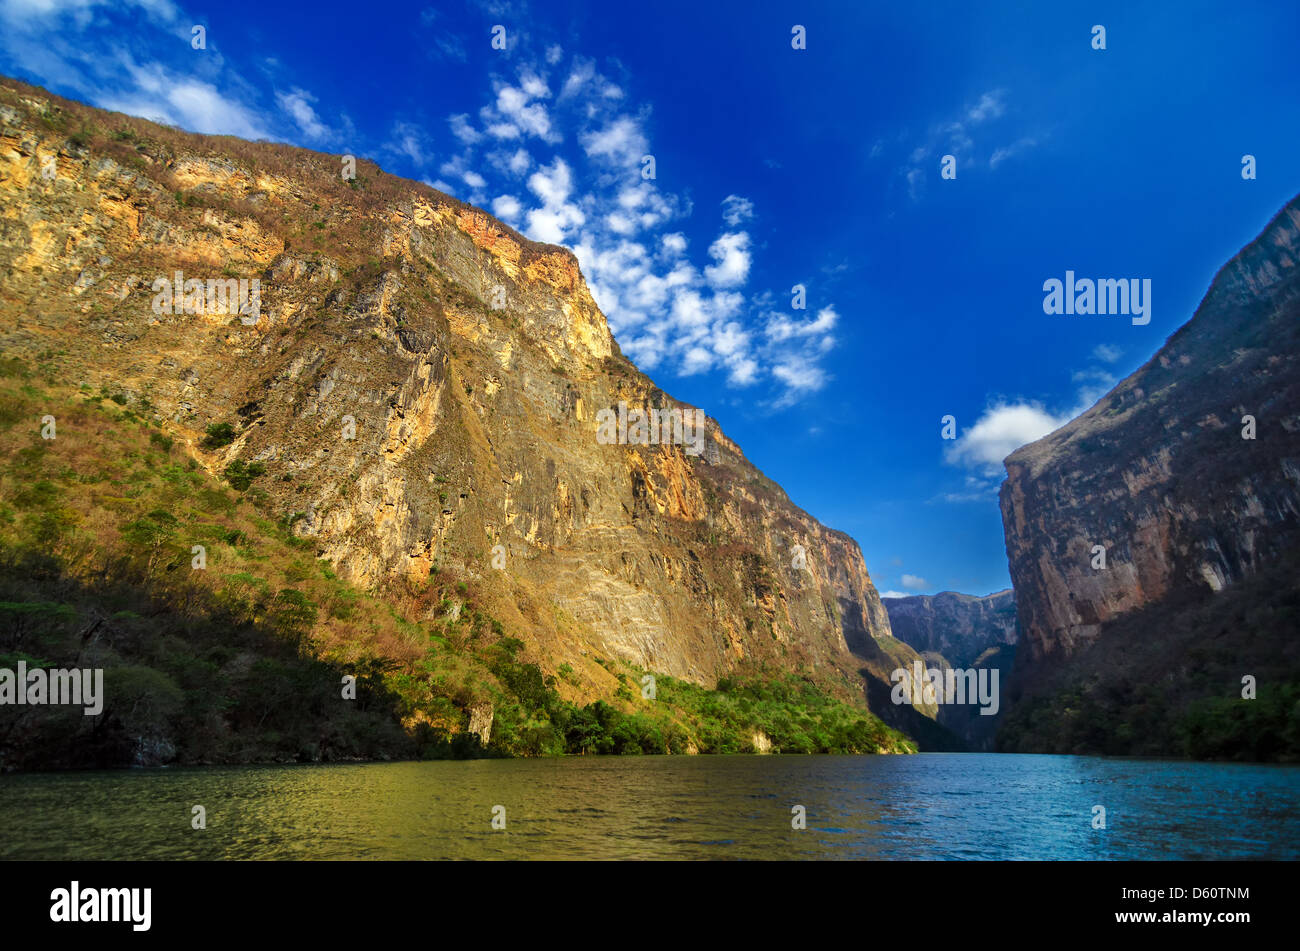 Inside Sumidero Canyon near Tuxtla Gutierrez in Chiapas, Mexico - Stock Image